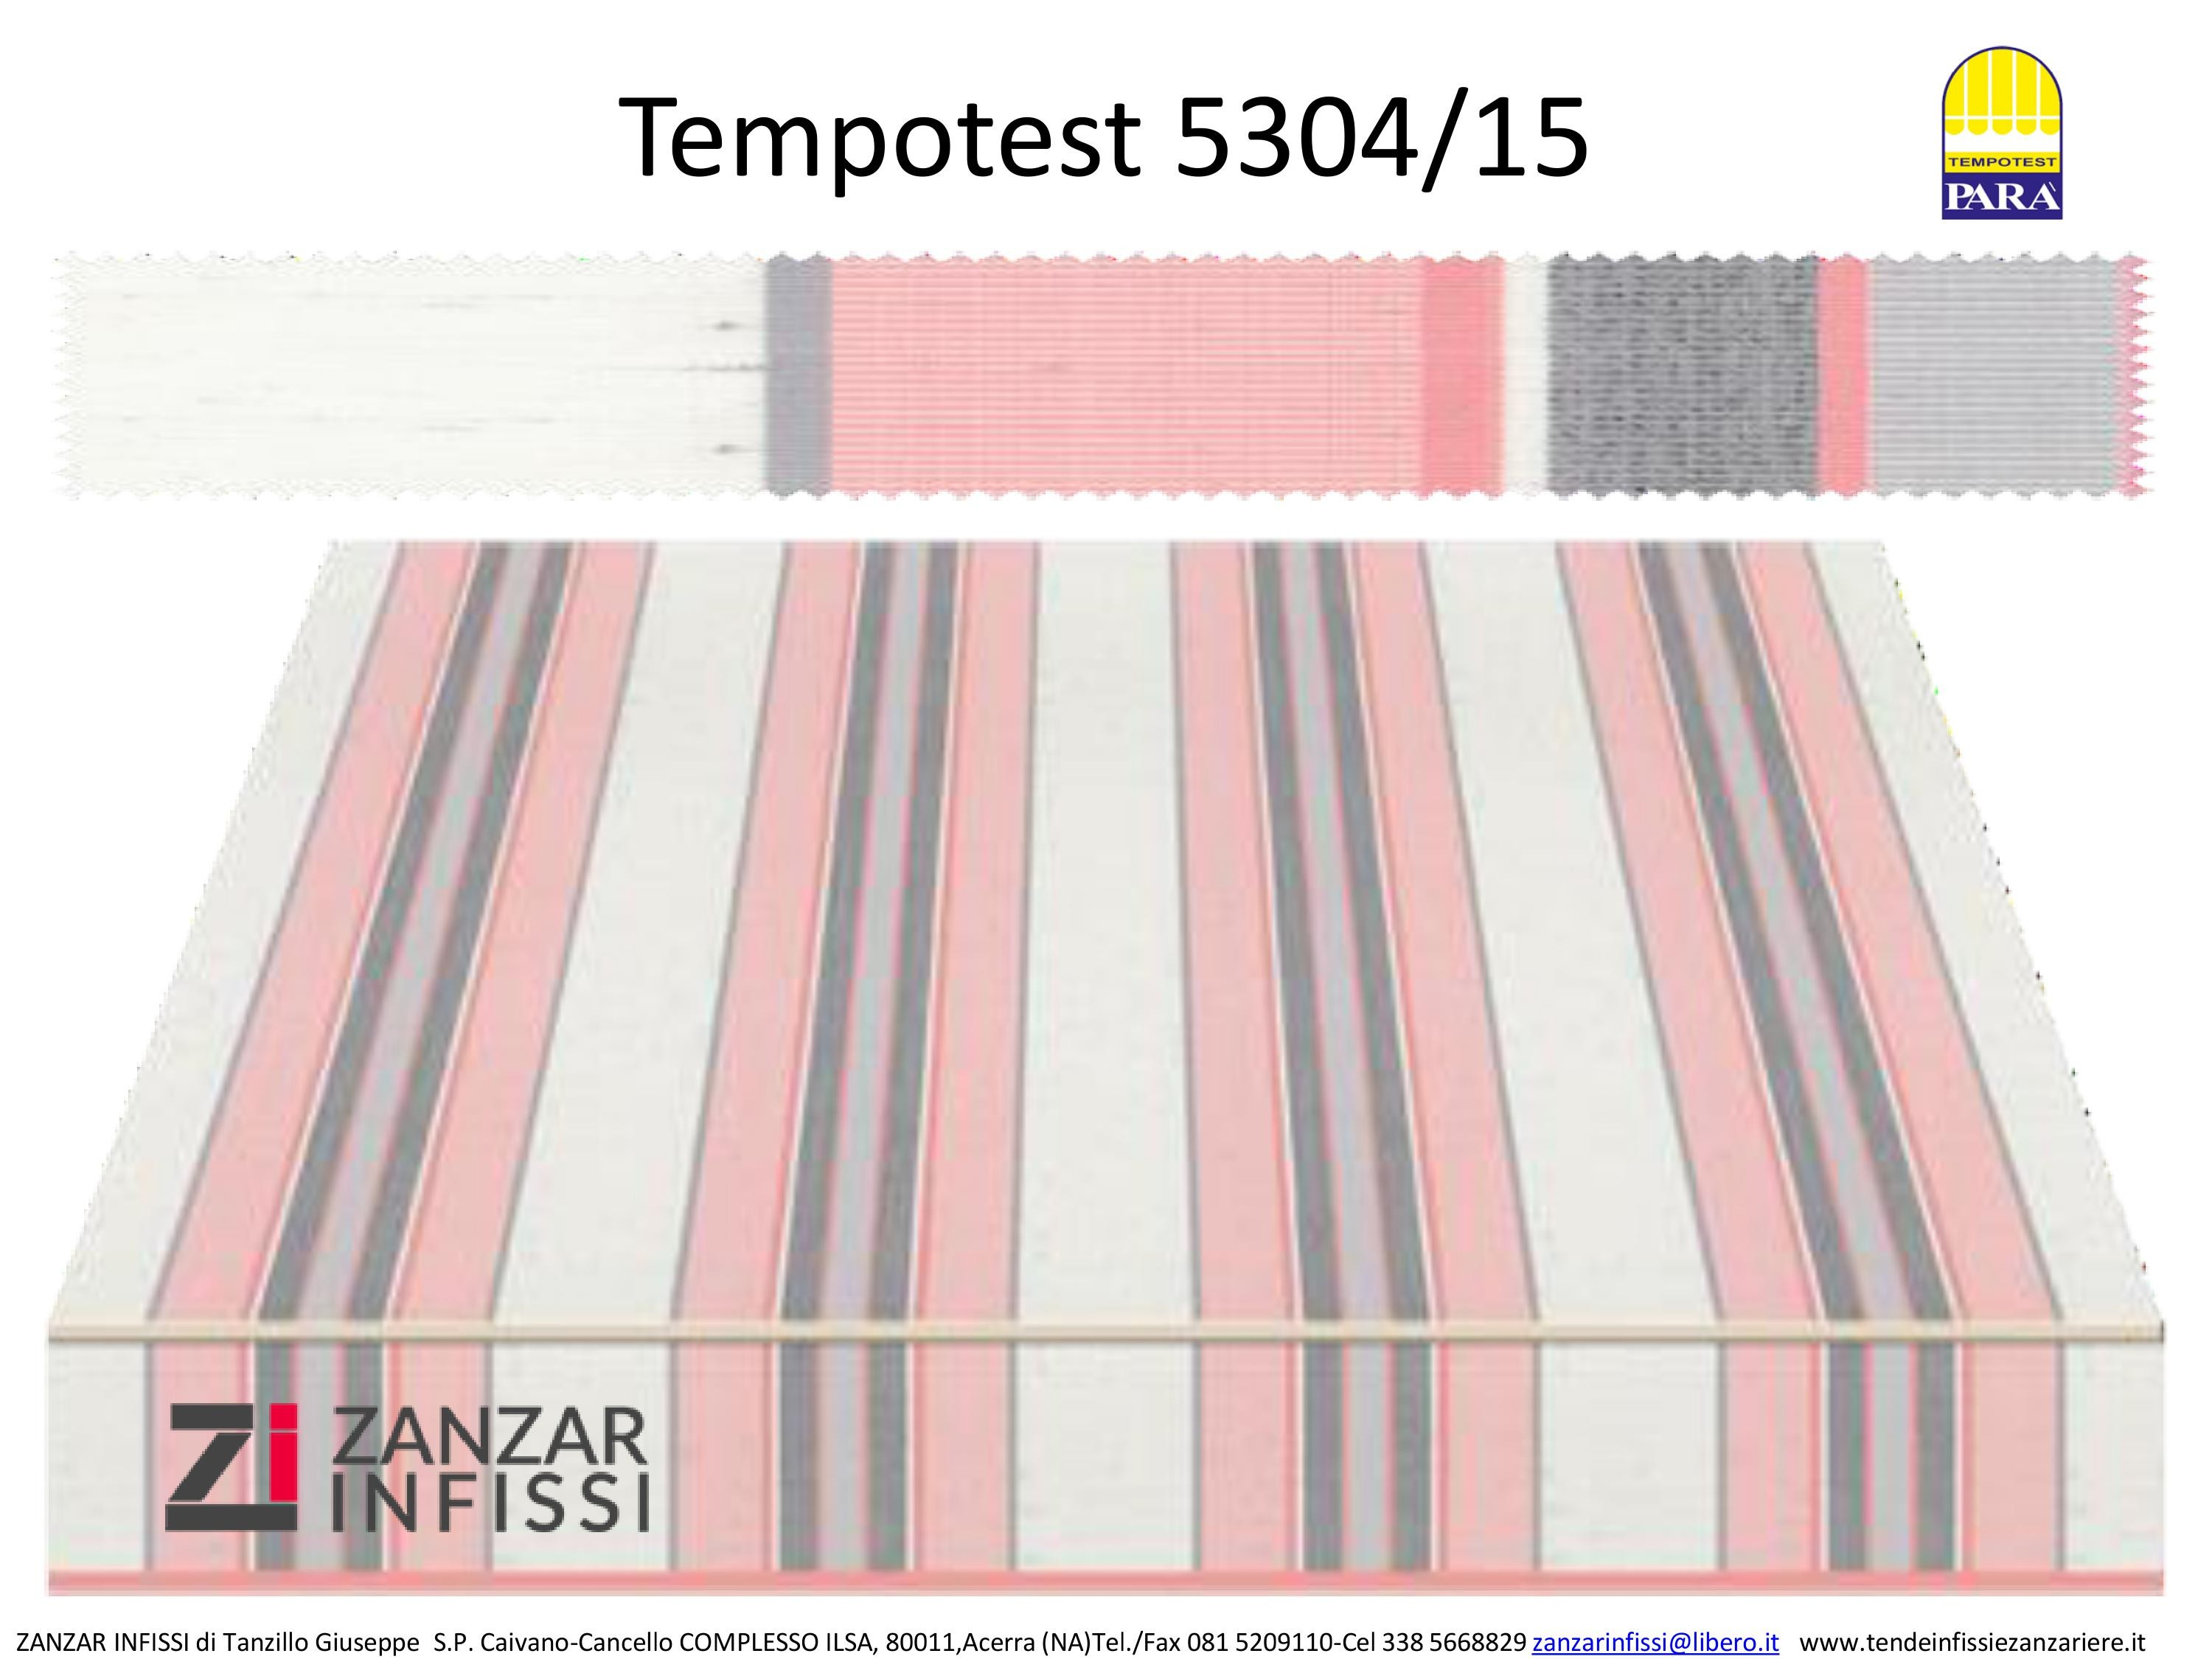 Tempotest 5304/15